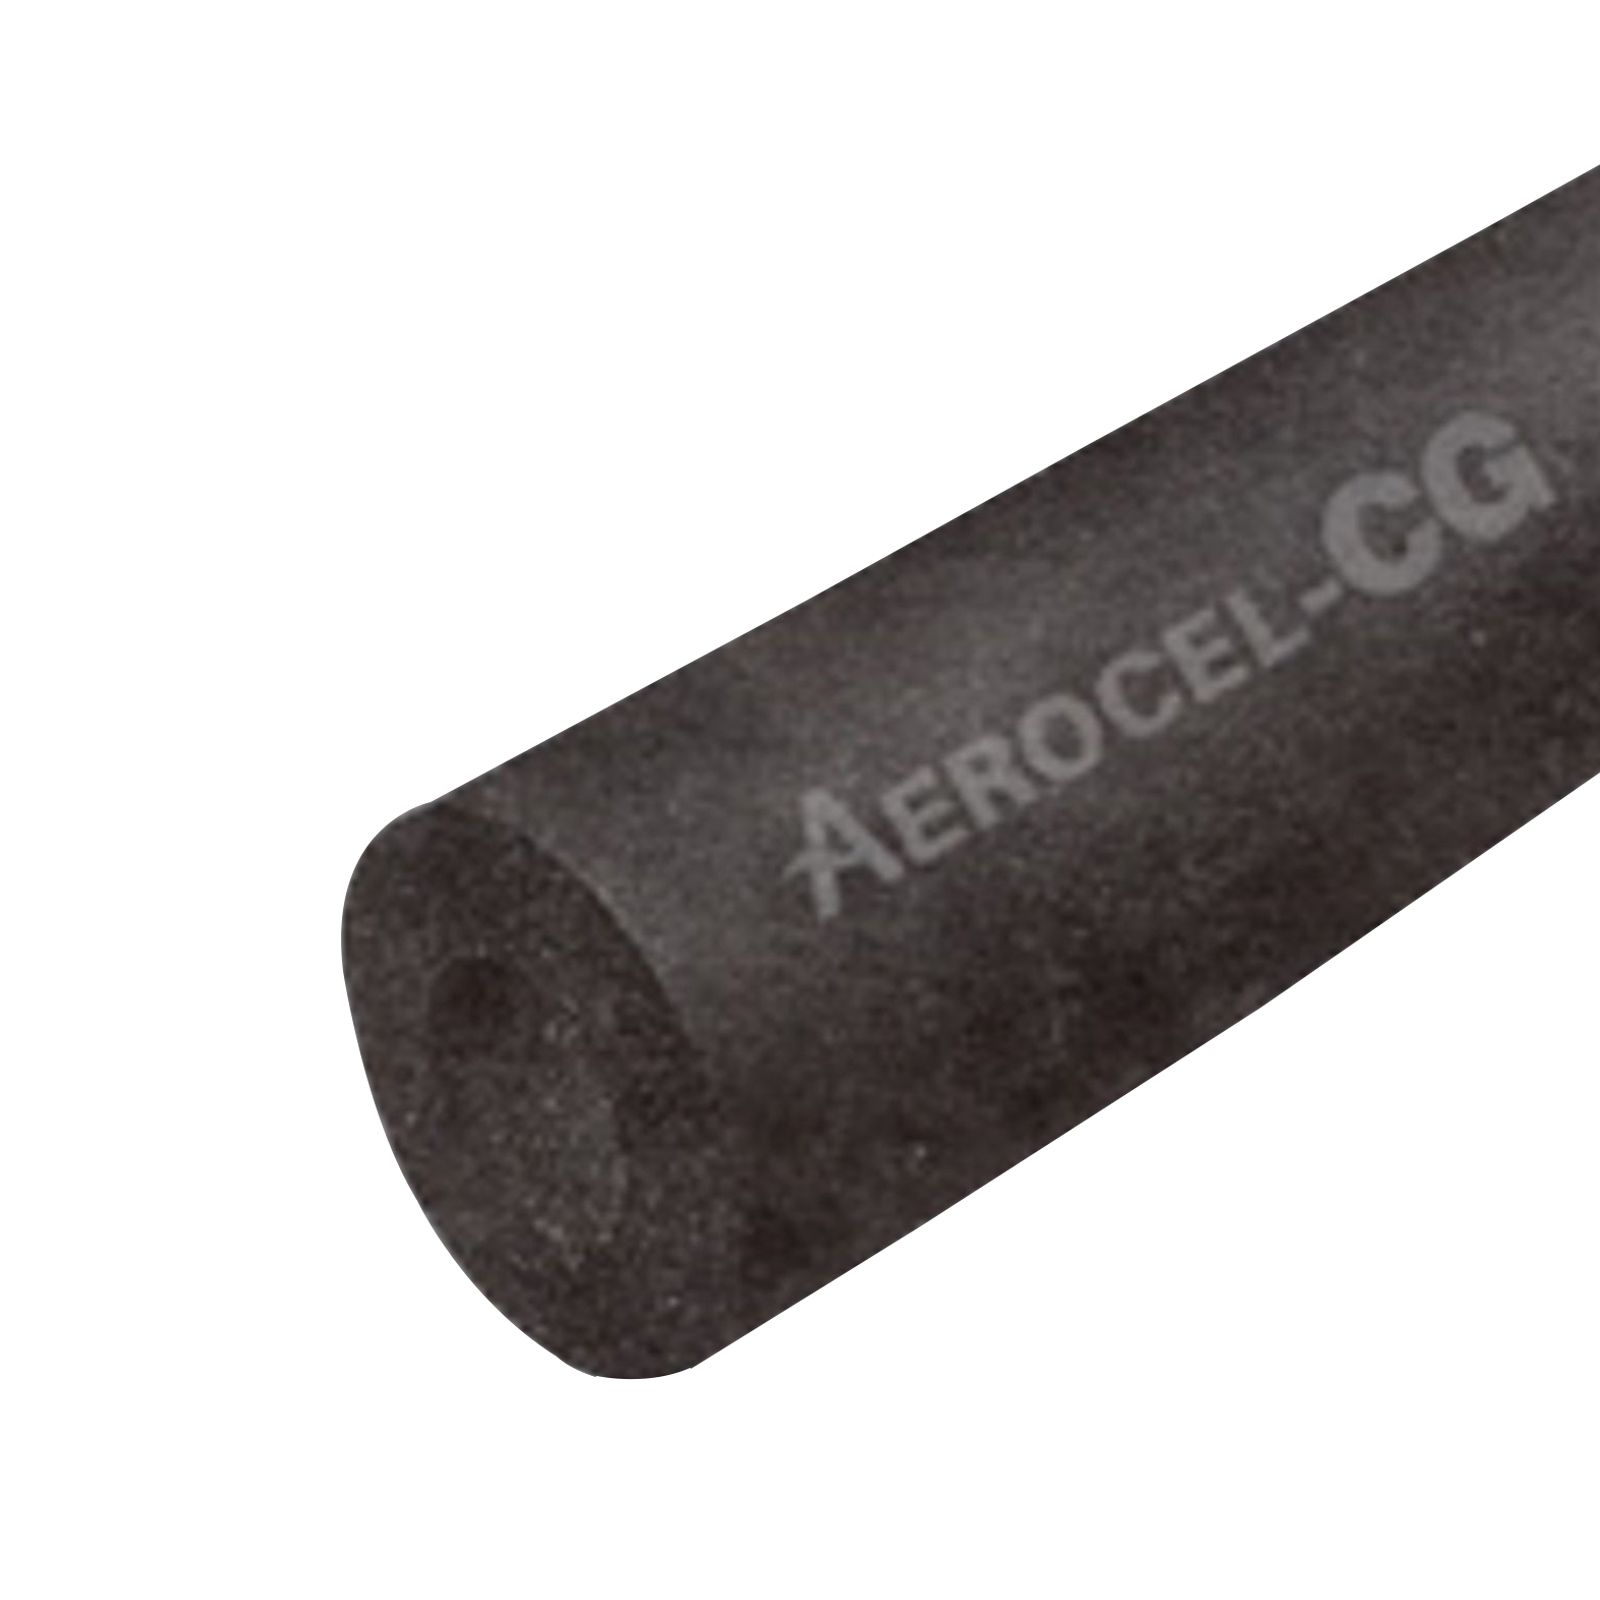 "Aeroflex CG5838 - Elastomeric Tubing Insulation, 5/8"" ID X 3/8"" Wall Thickness, Fits 5/8"" OD Copper Tubing, Residential Only"